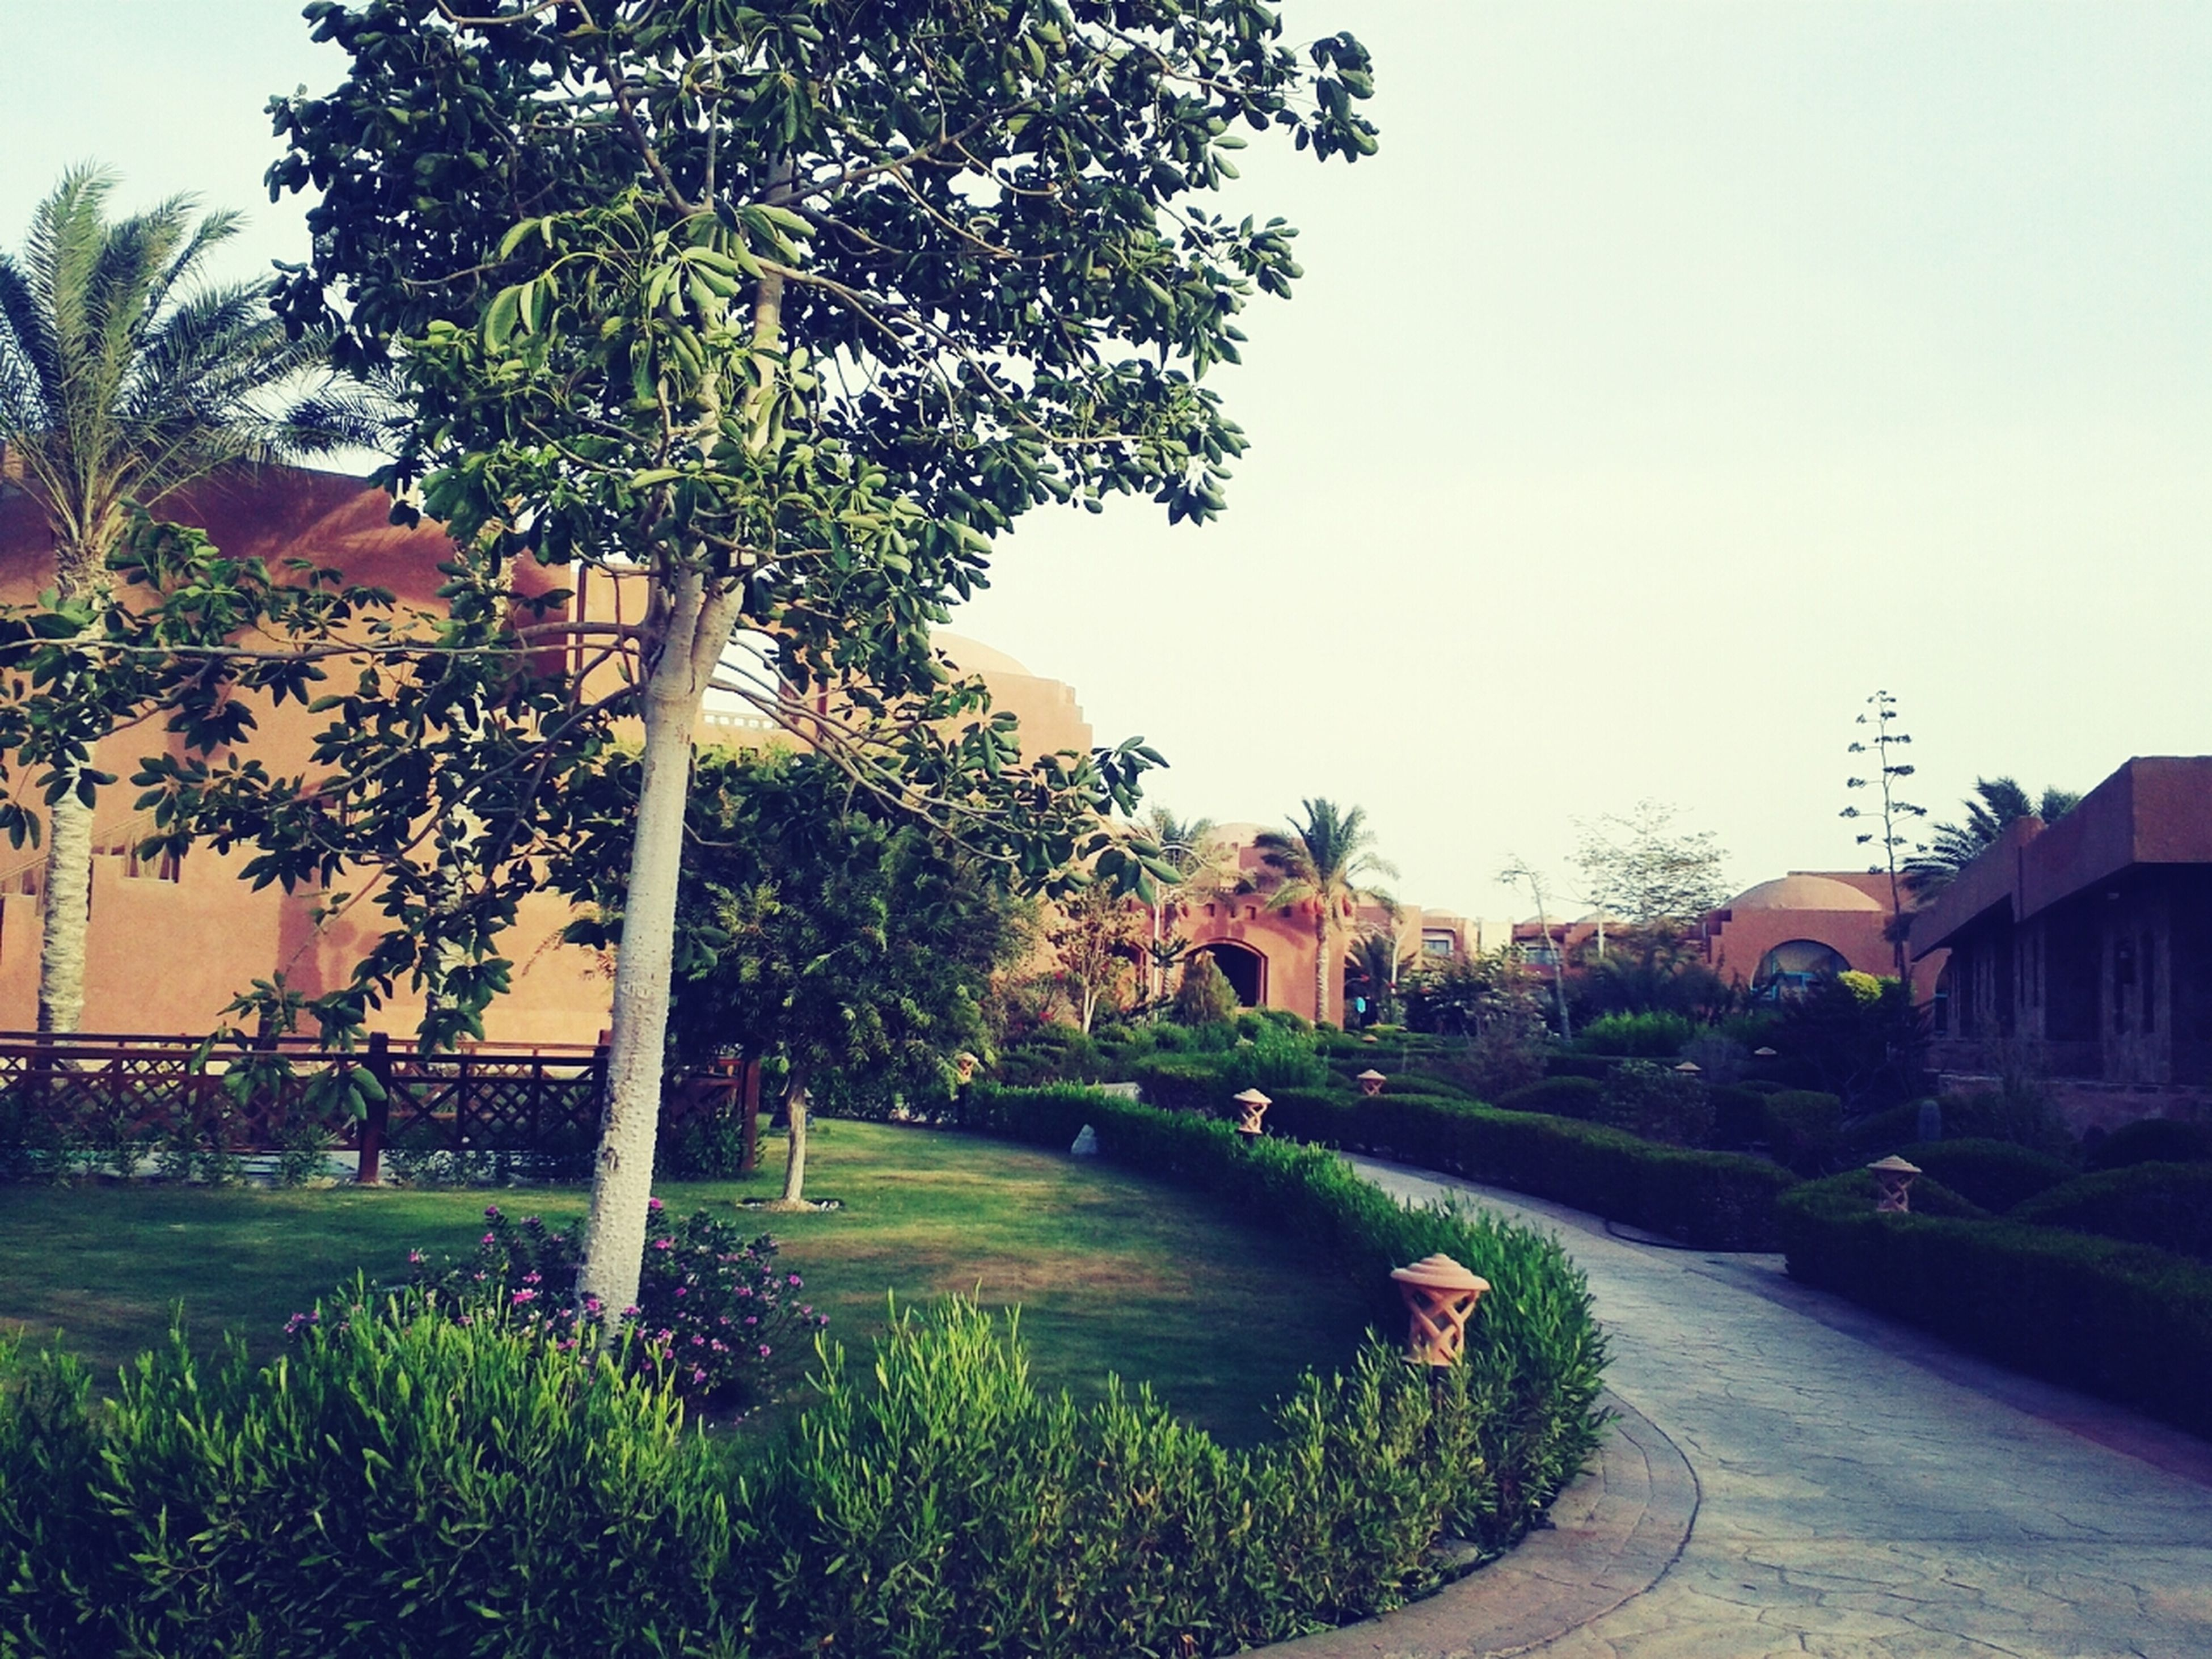 architecture, building exterior, built structure, tree, clear sky, grass, plant, house, growth, lawn, footpath, formal garden, street, city, sky, road, residential building, day, residential structure, outdoors